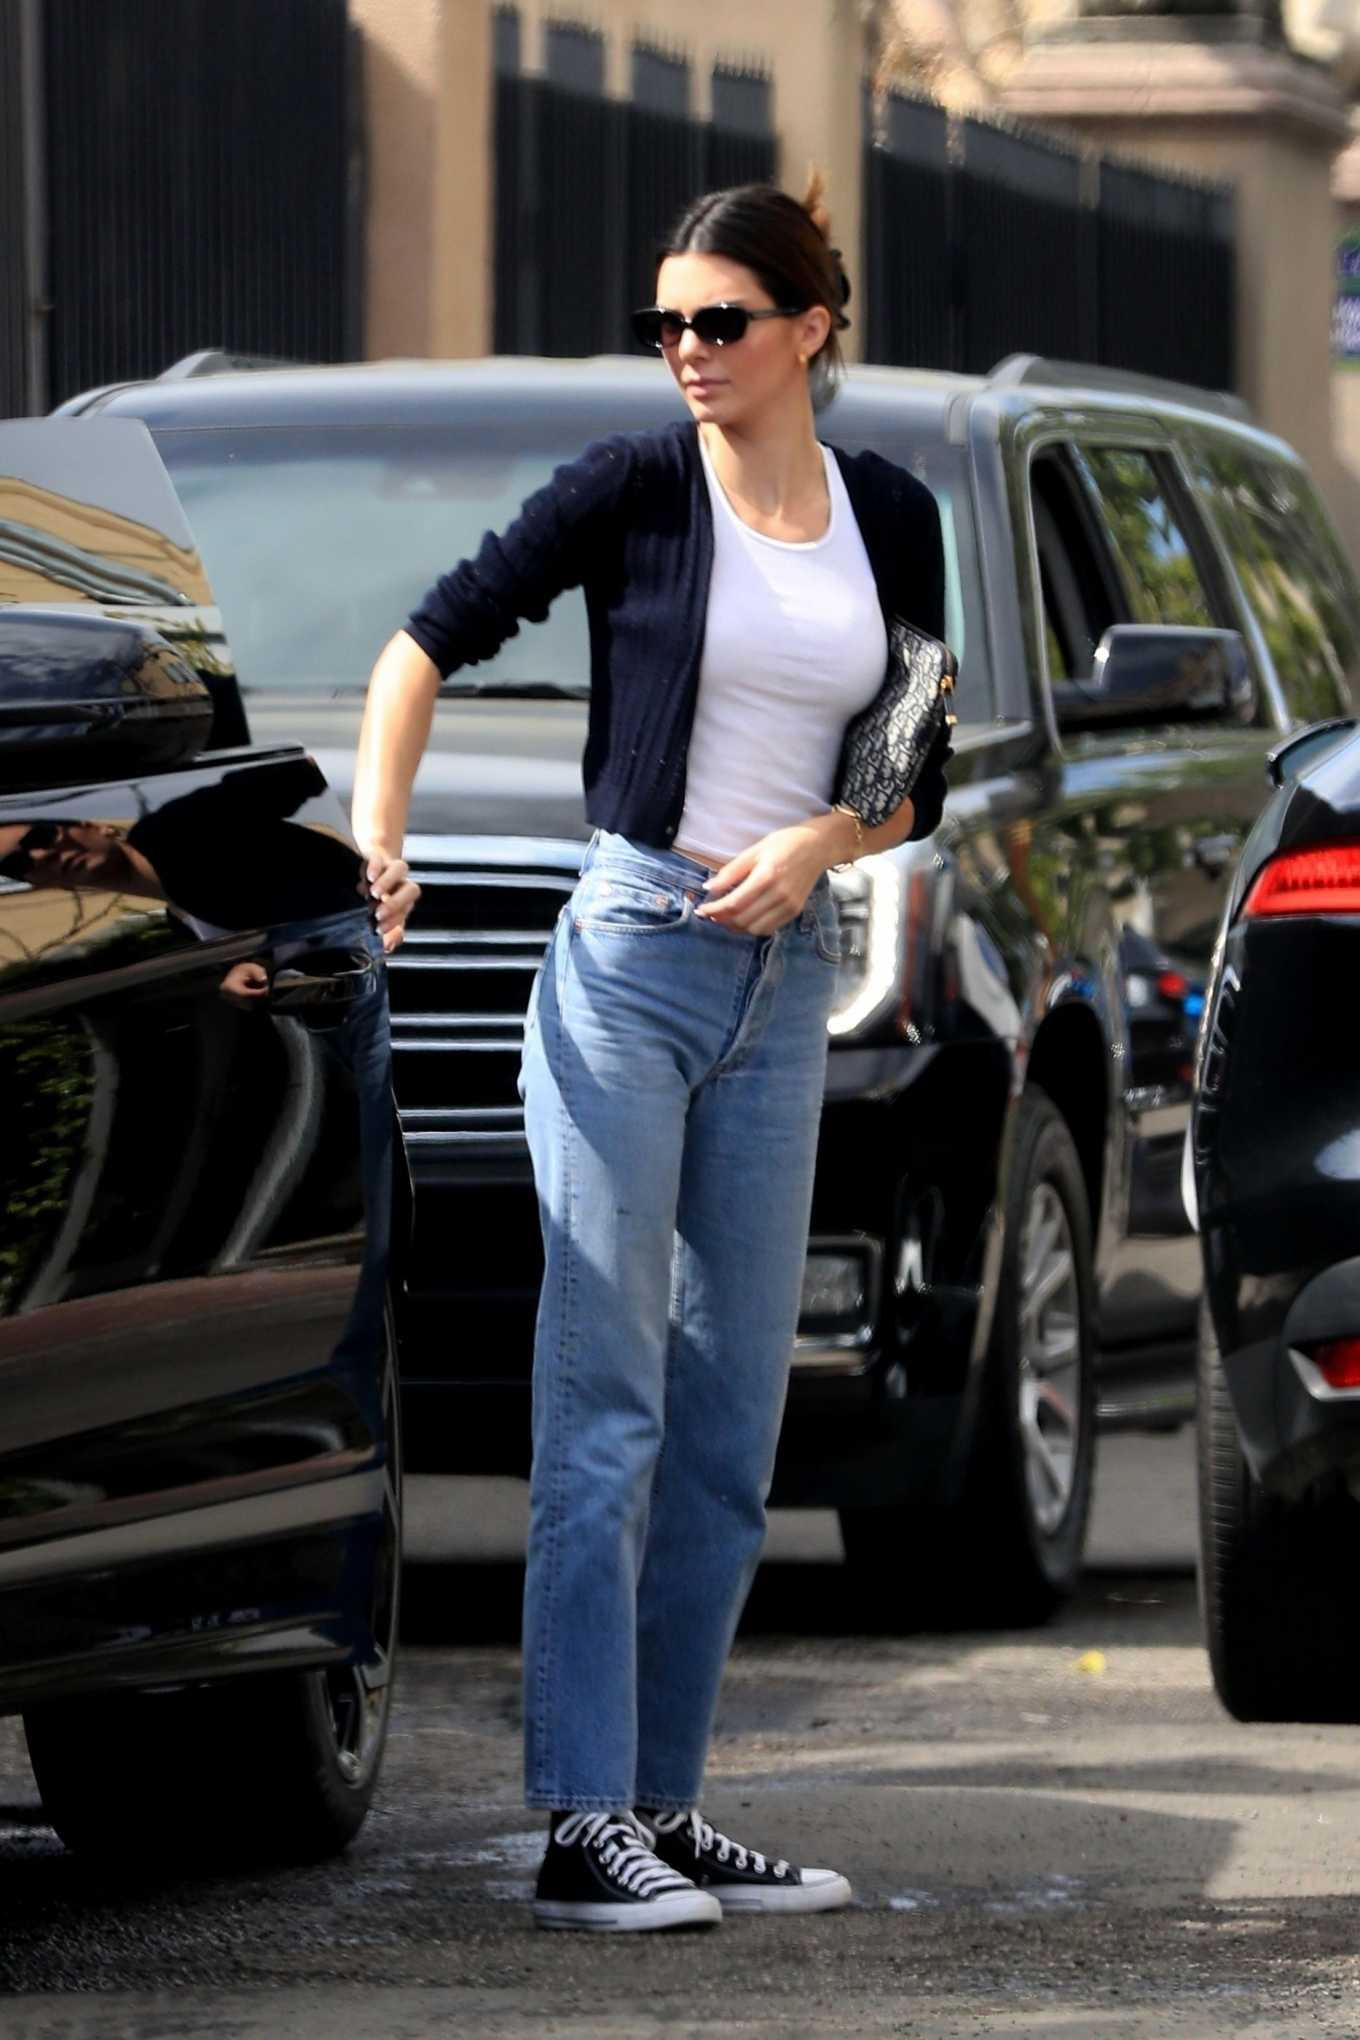 Kendall Jenner rocking a See through white tank top with a semi-sheer fabric, a round neck and straps